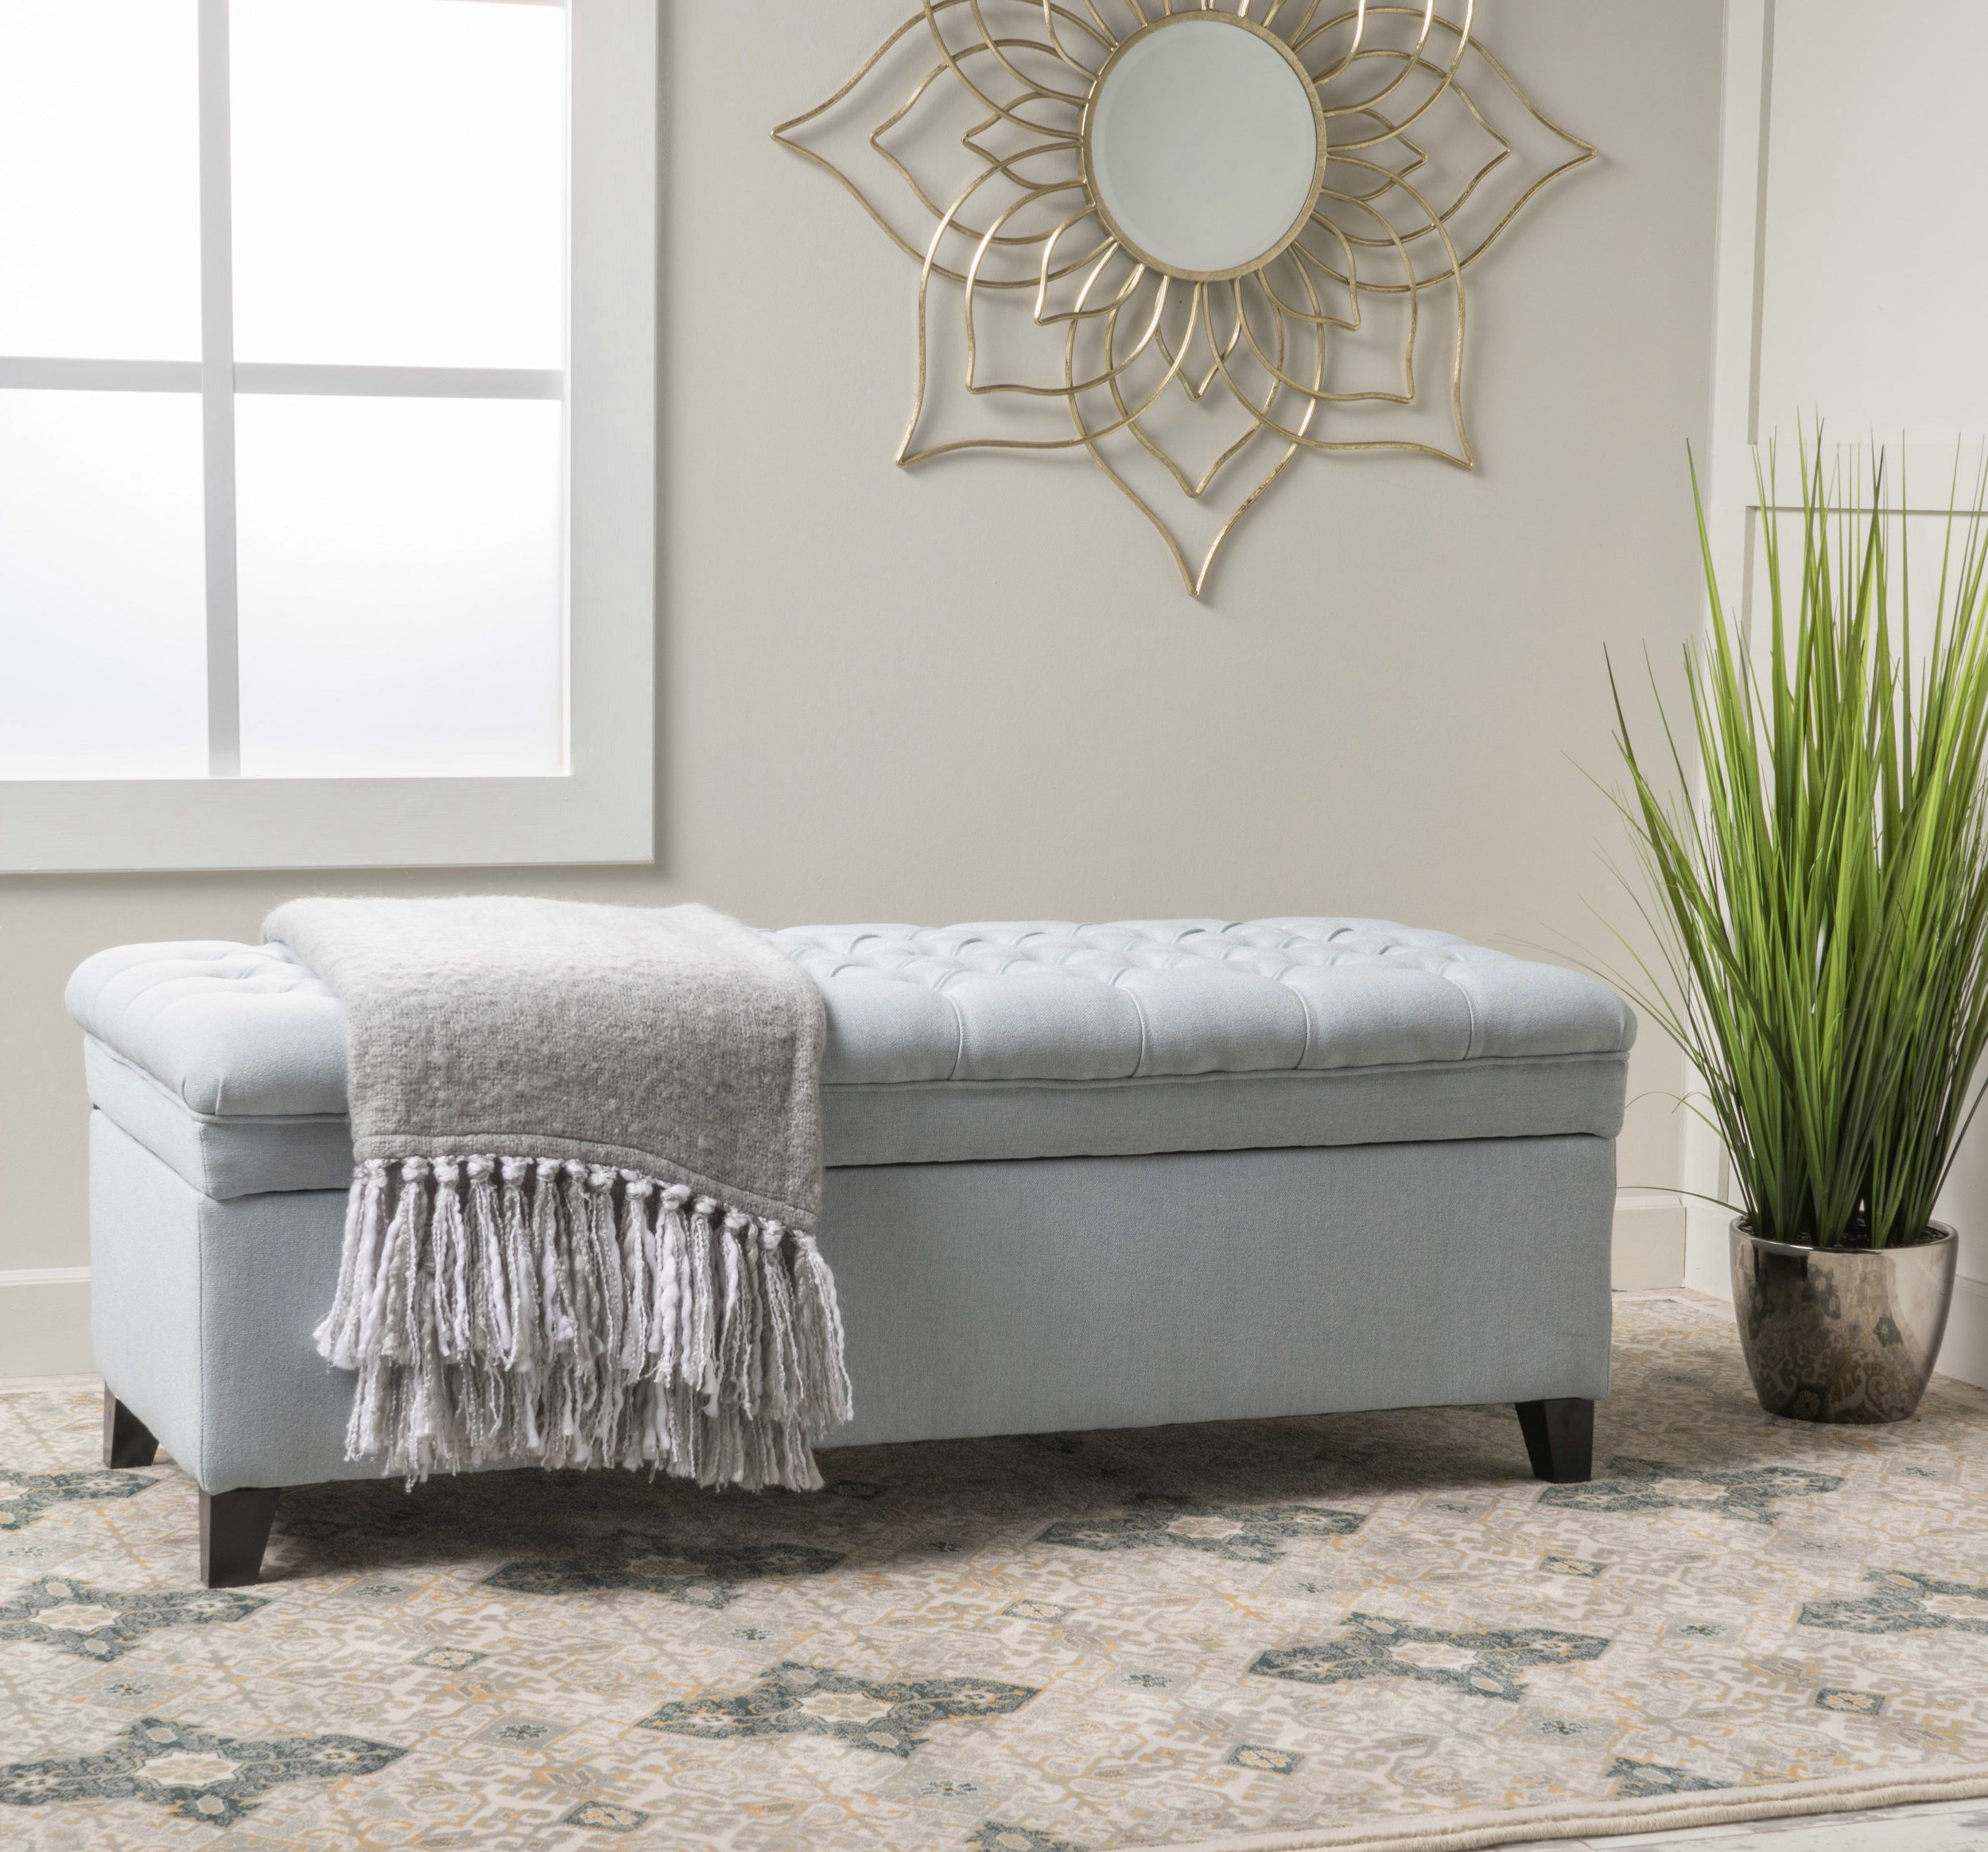 Modern Solid Tufted Fabric Storage Ottoman Seat Bench Coffee Table Entryway (Light Sky)